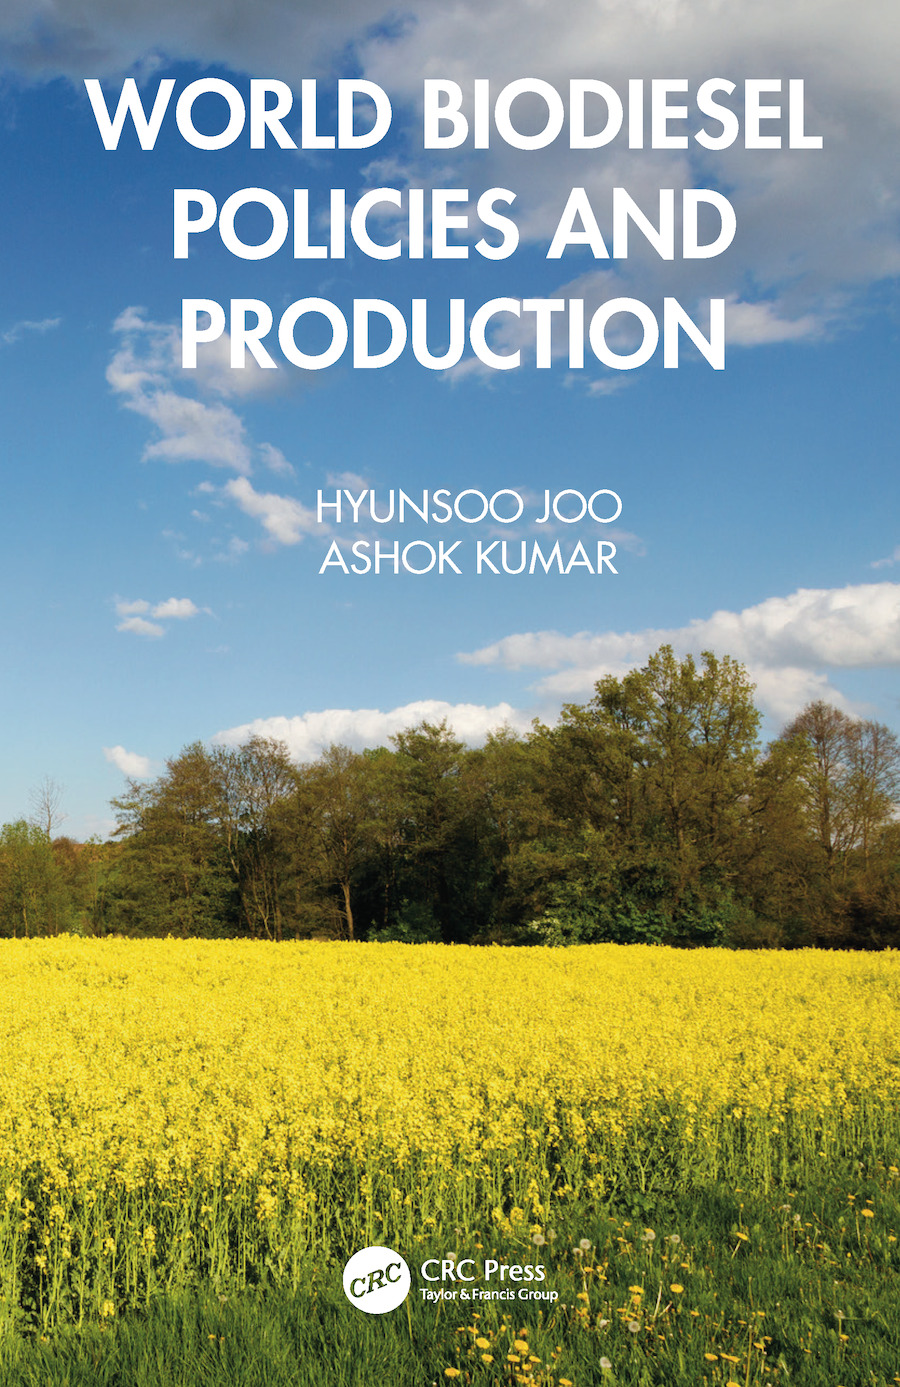 World Biodiesel Policies and Production book cover